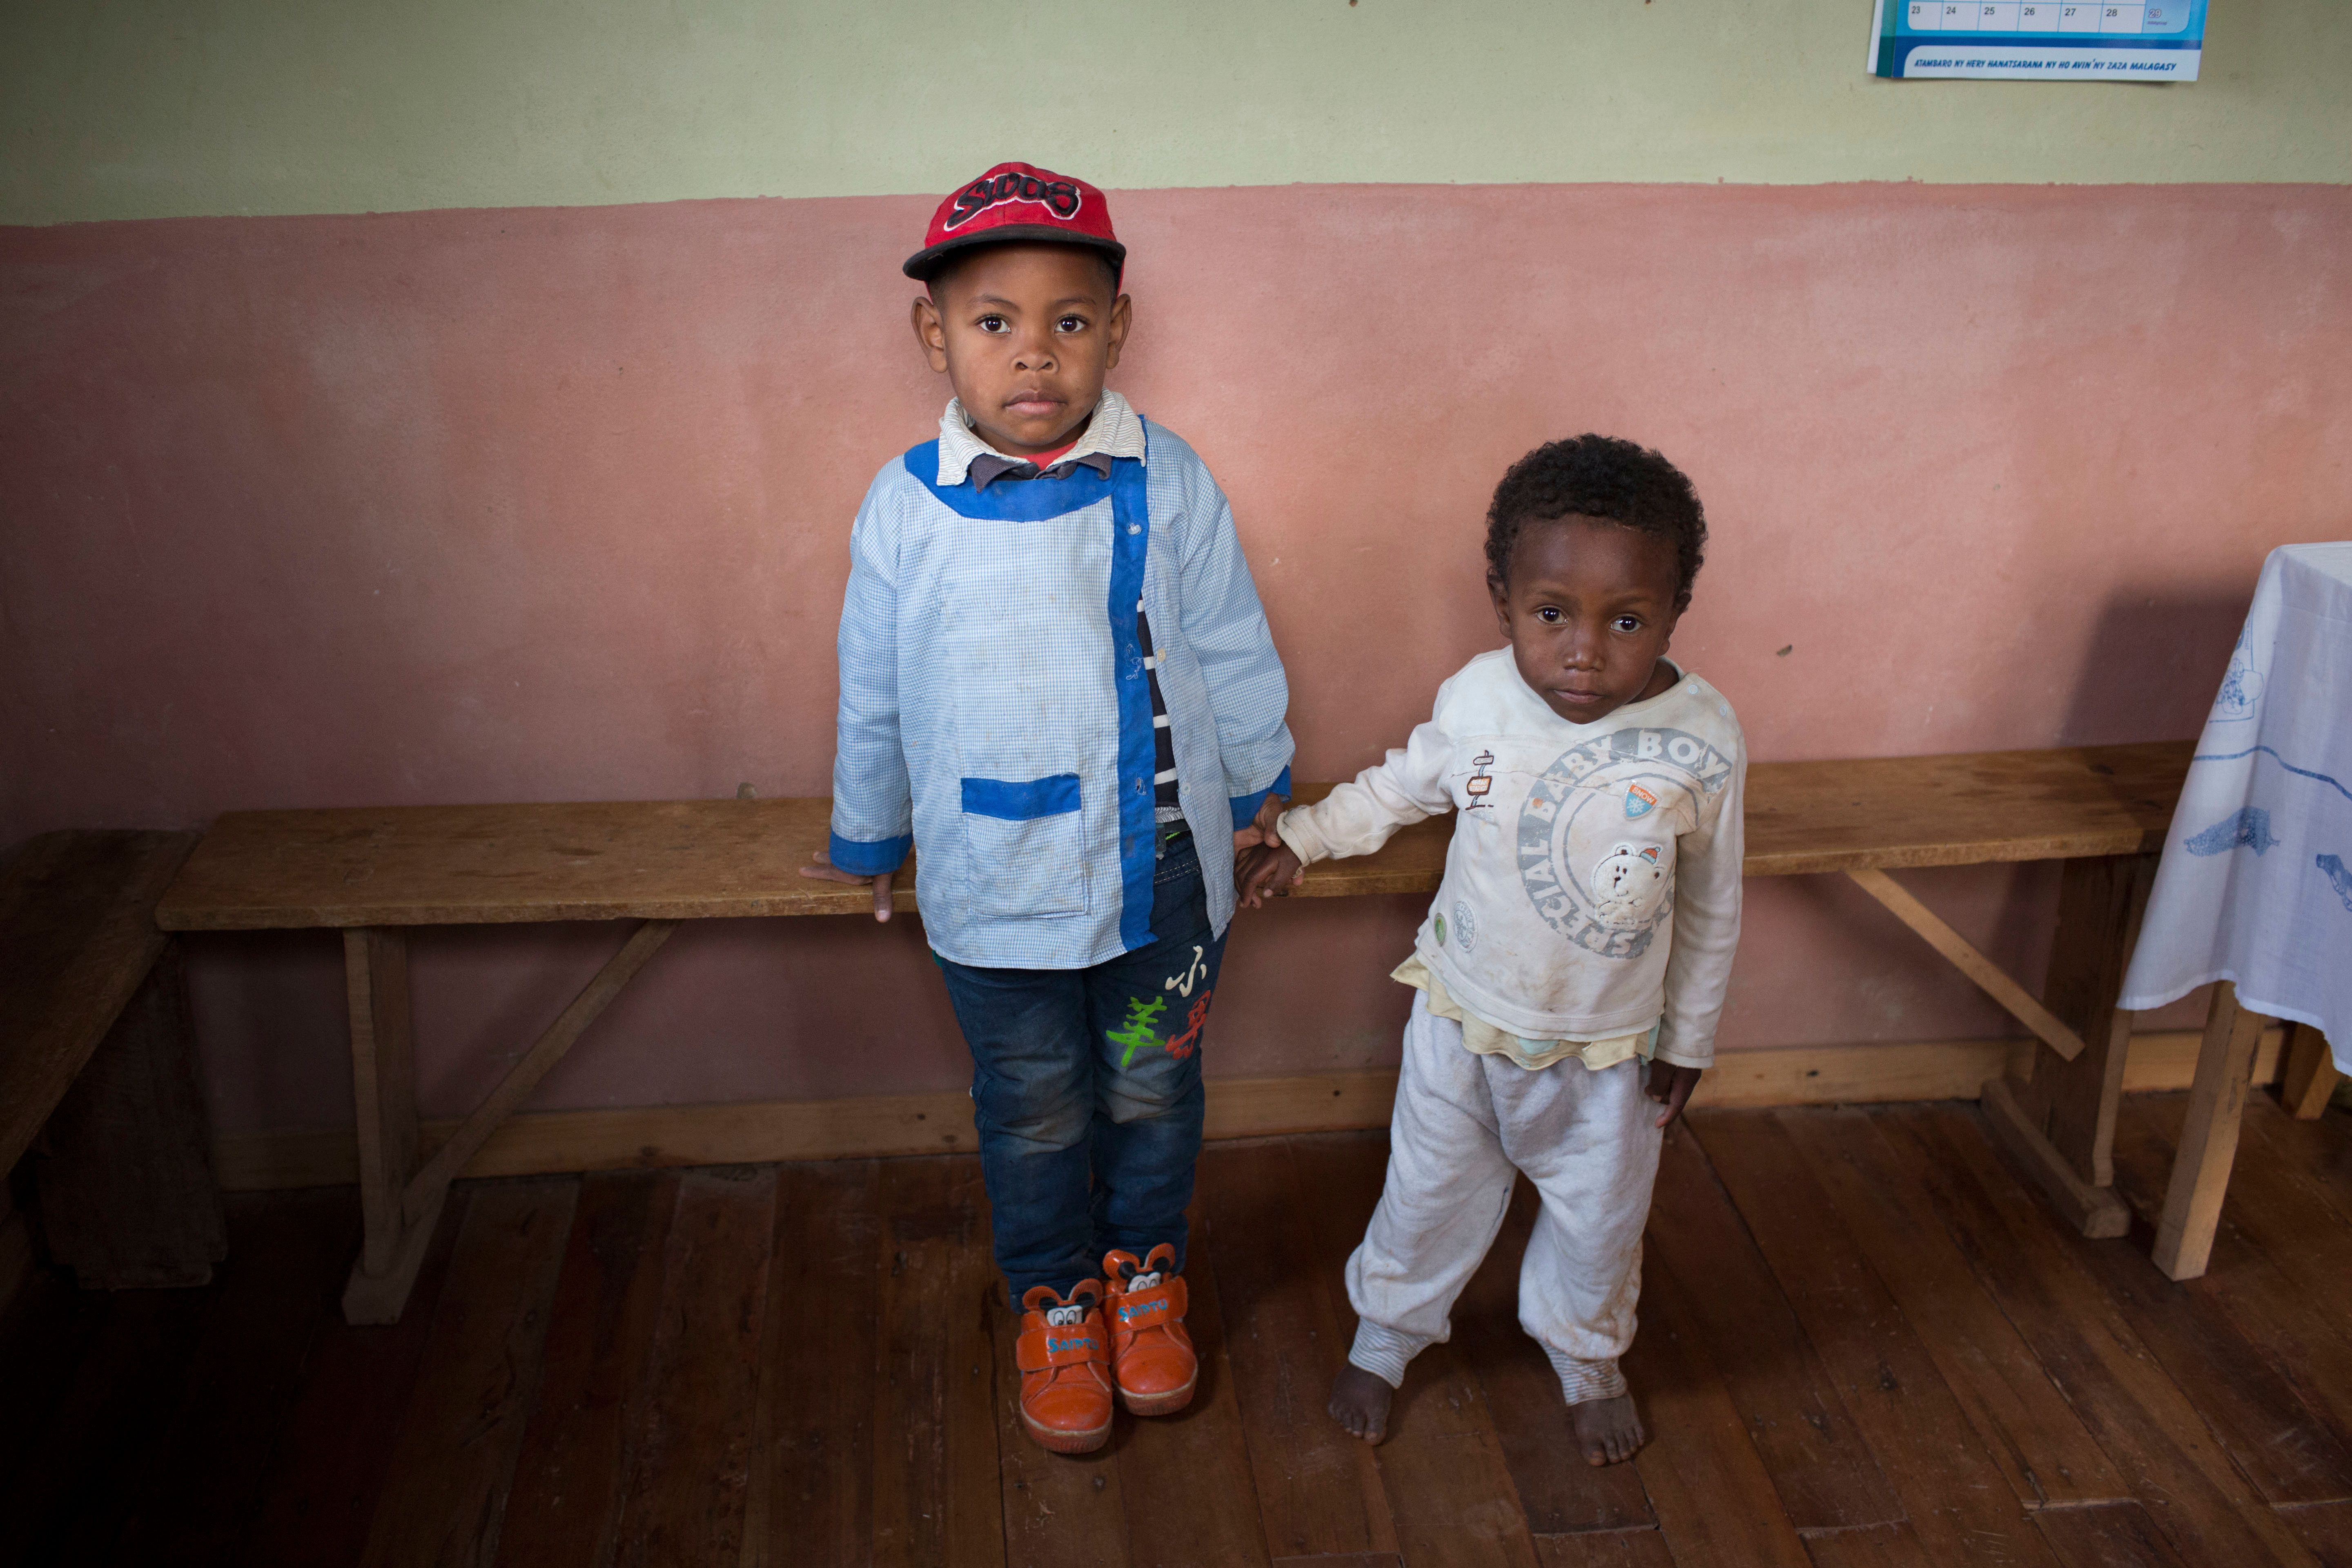 Miranto and Sitraka were born on the same day in the same village in Madagascar, and yet Sitraka's life will be vastly different after being chronically malnourished.